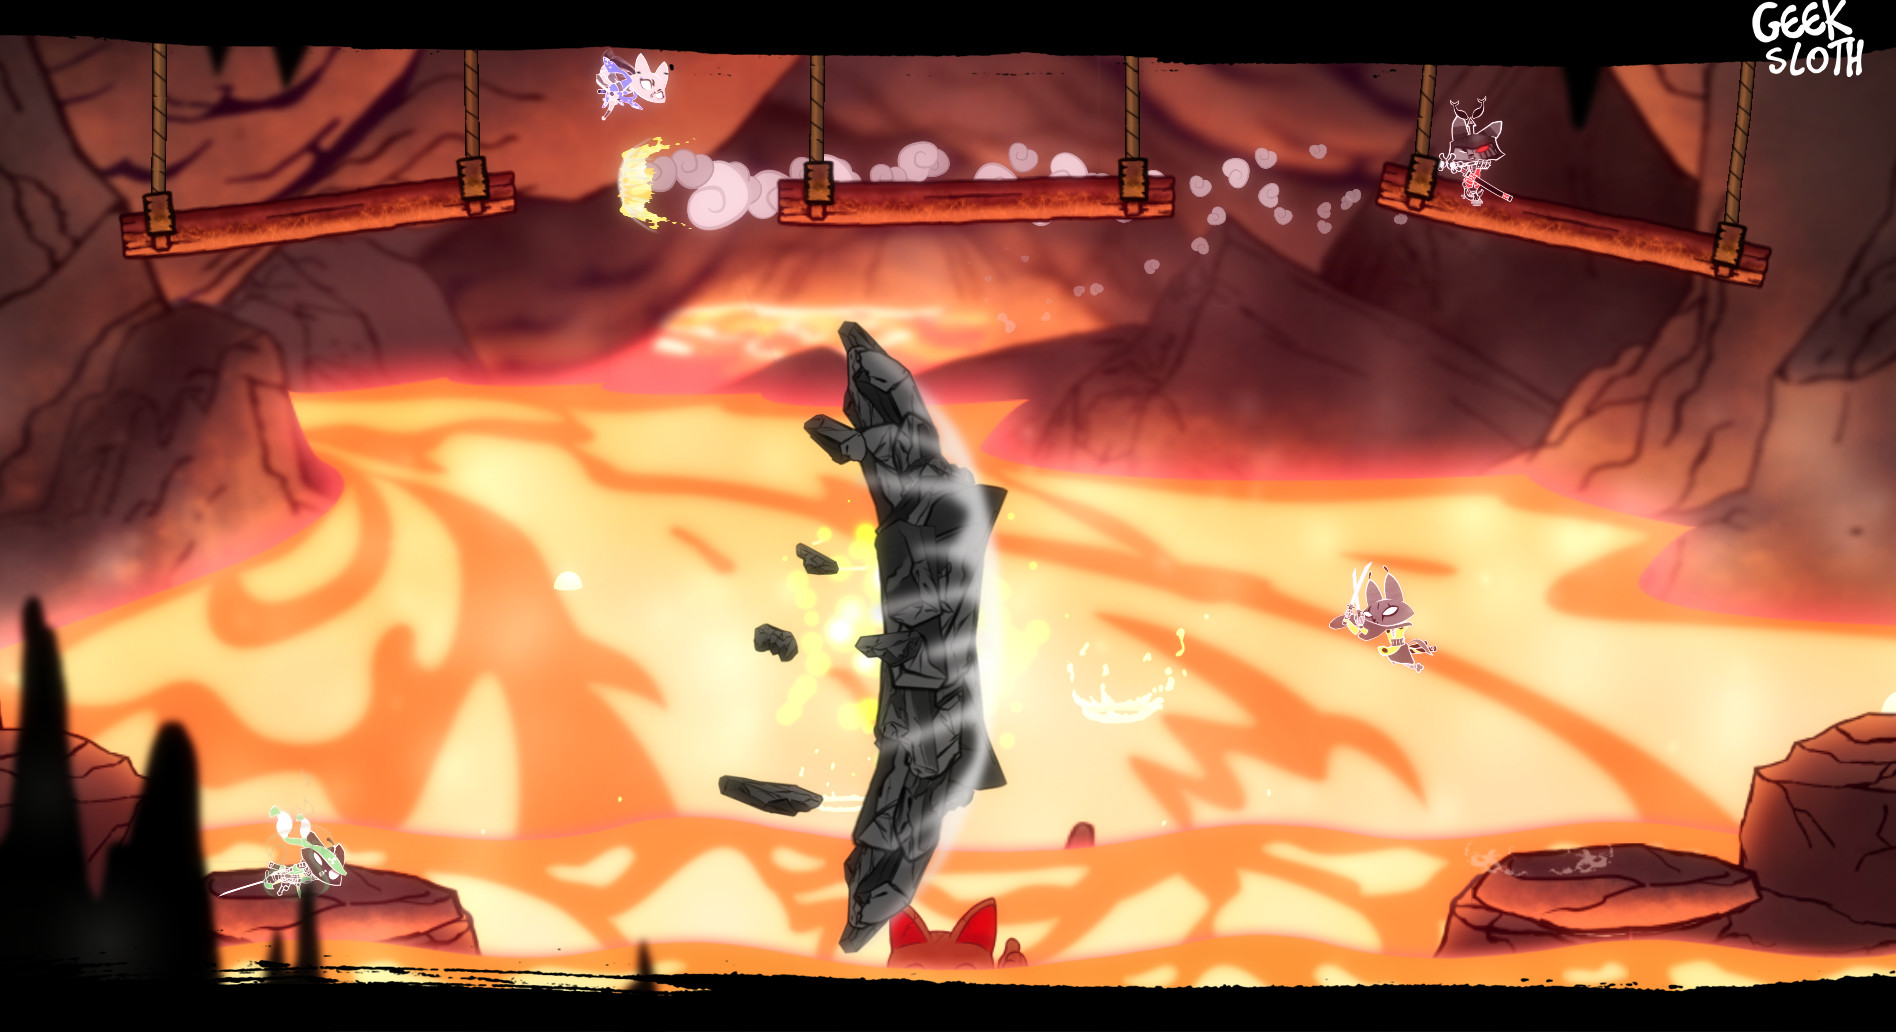 Samudai screenshot